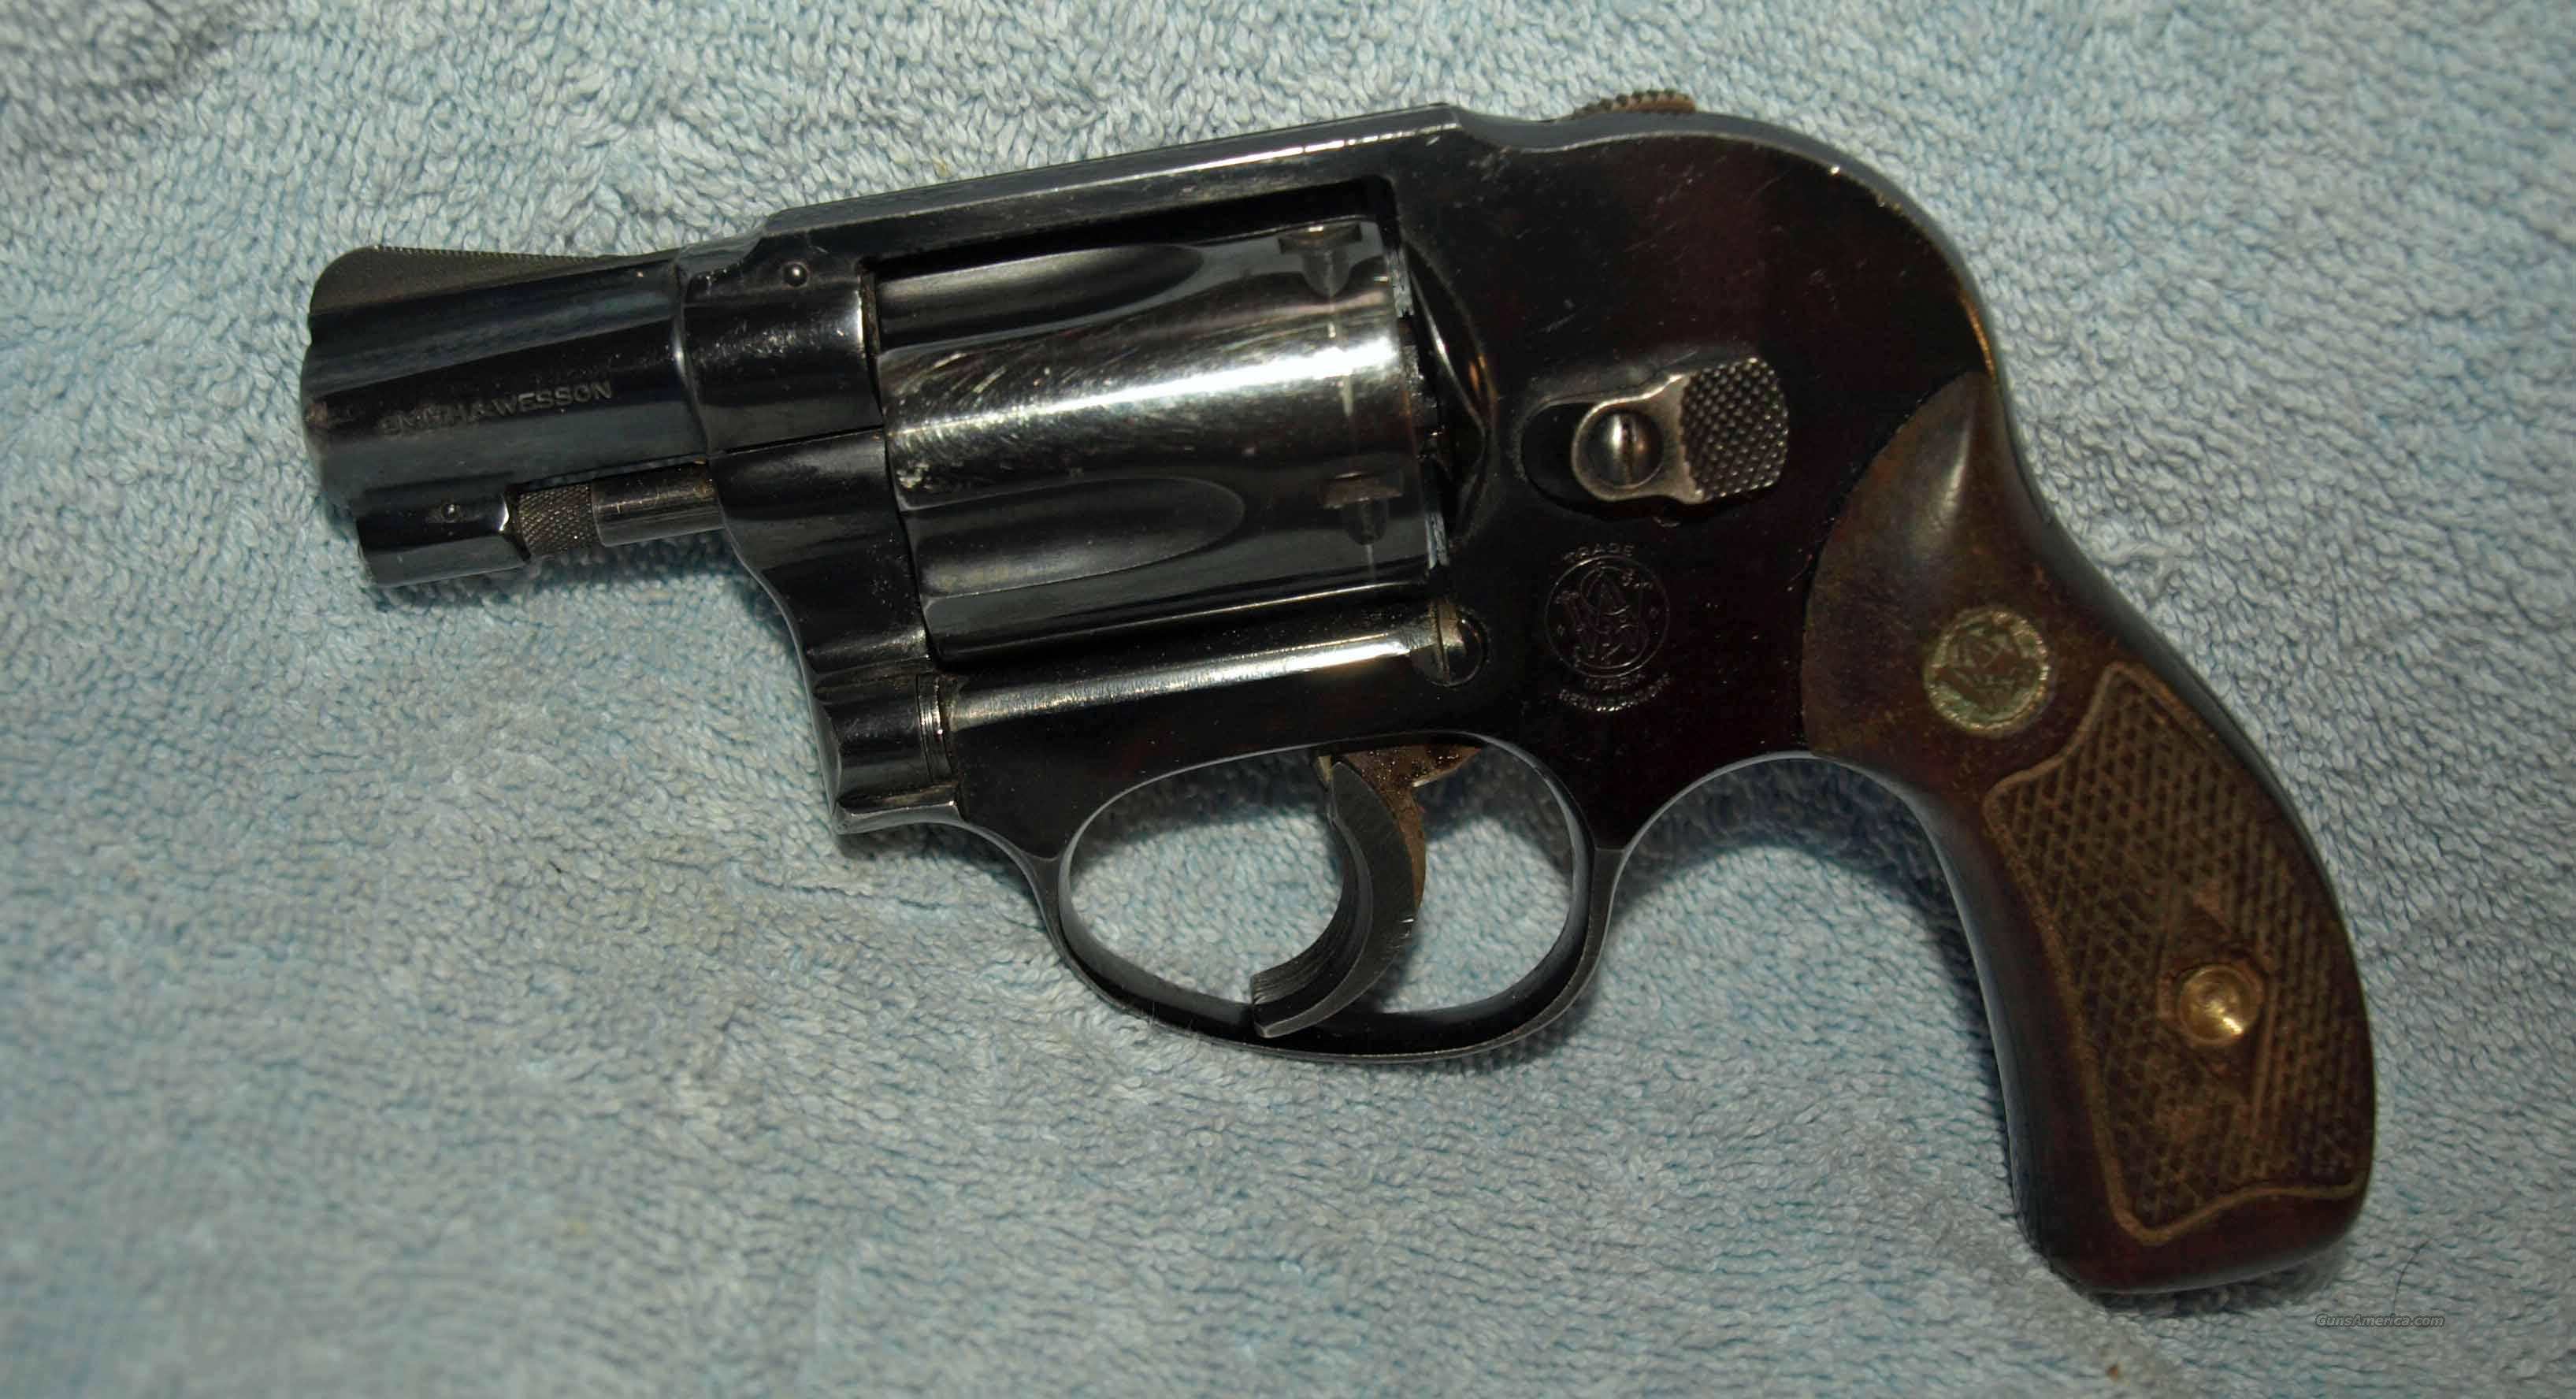 S&W Model 49  Guns > Pistols > Smith & Wesson Revolvers > Pocket Pistols